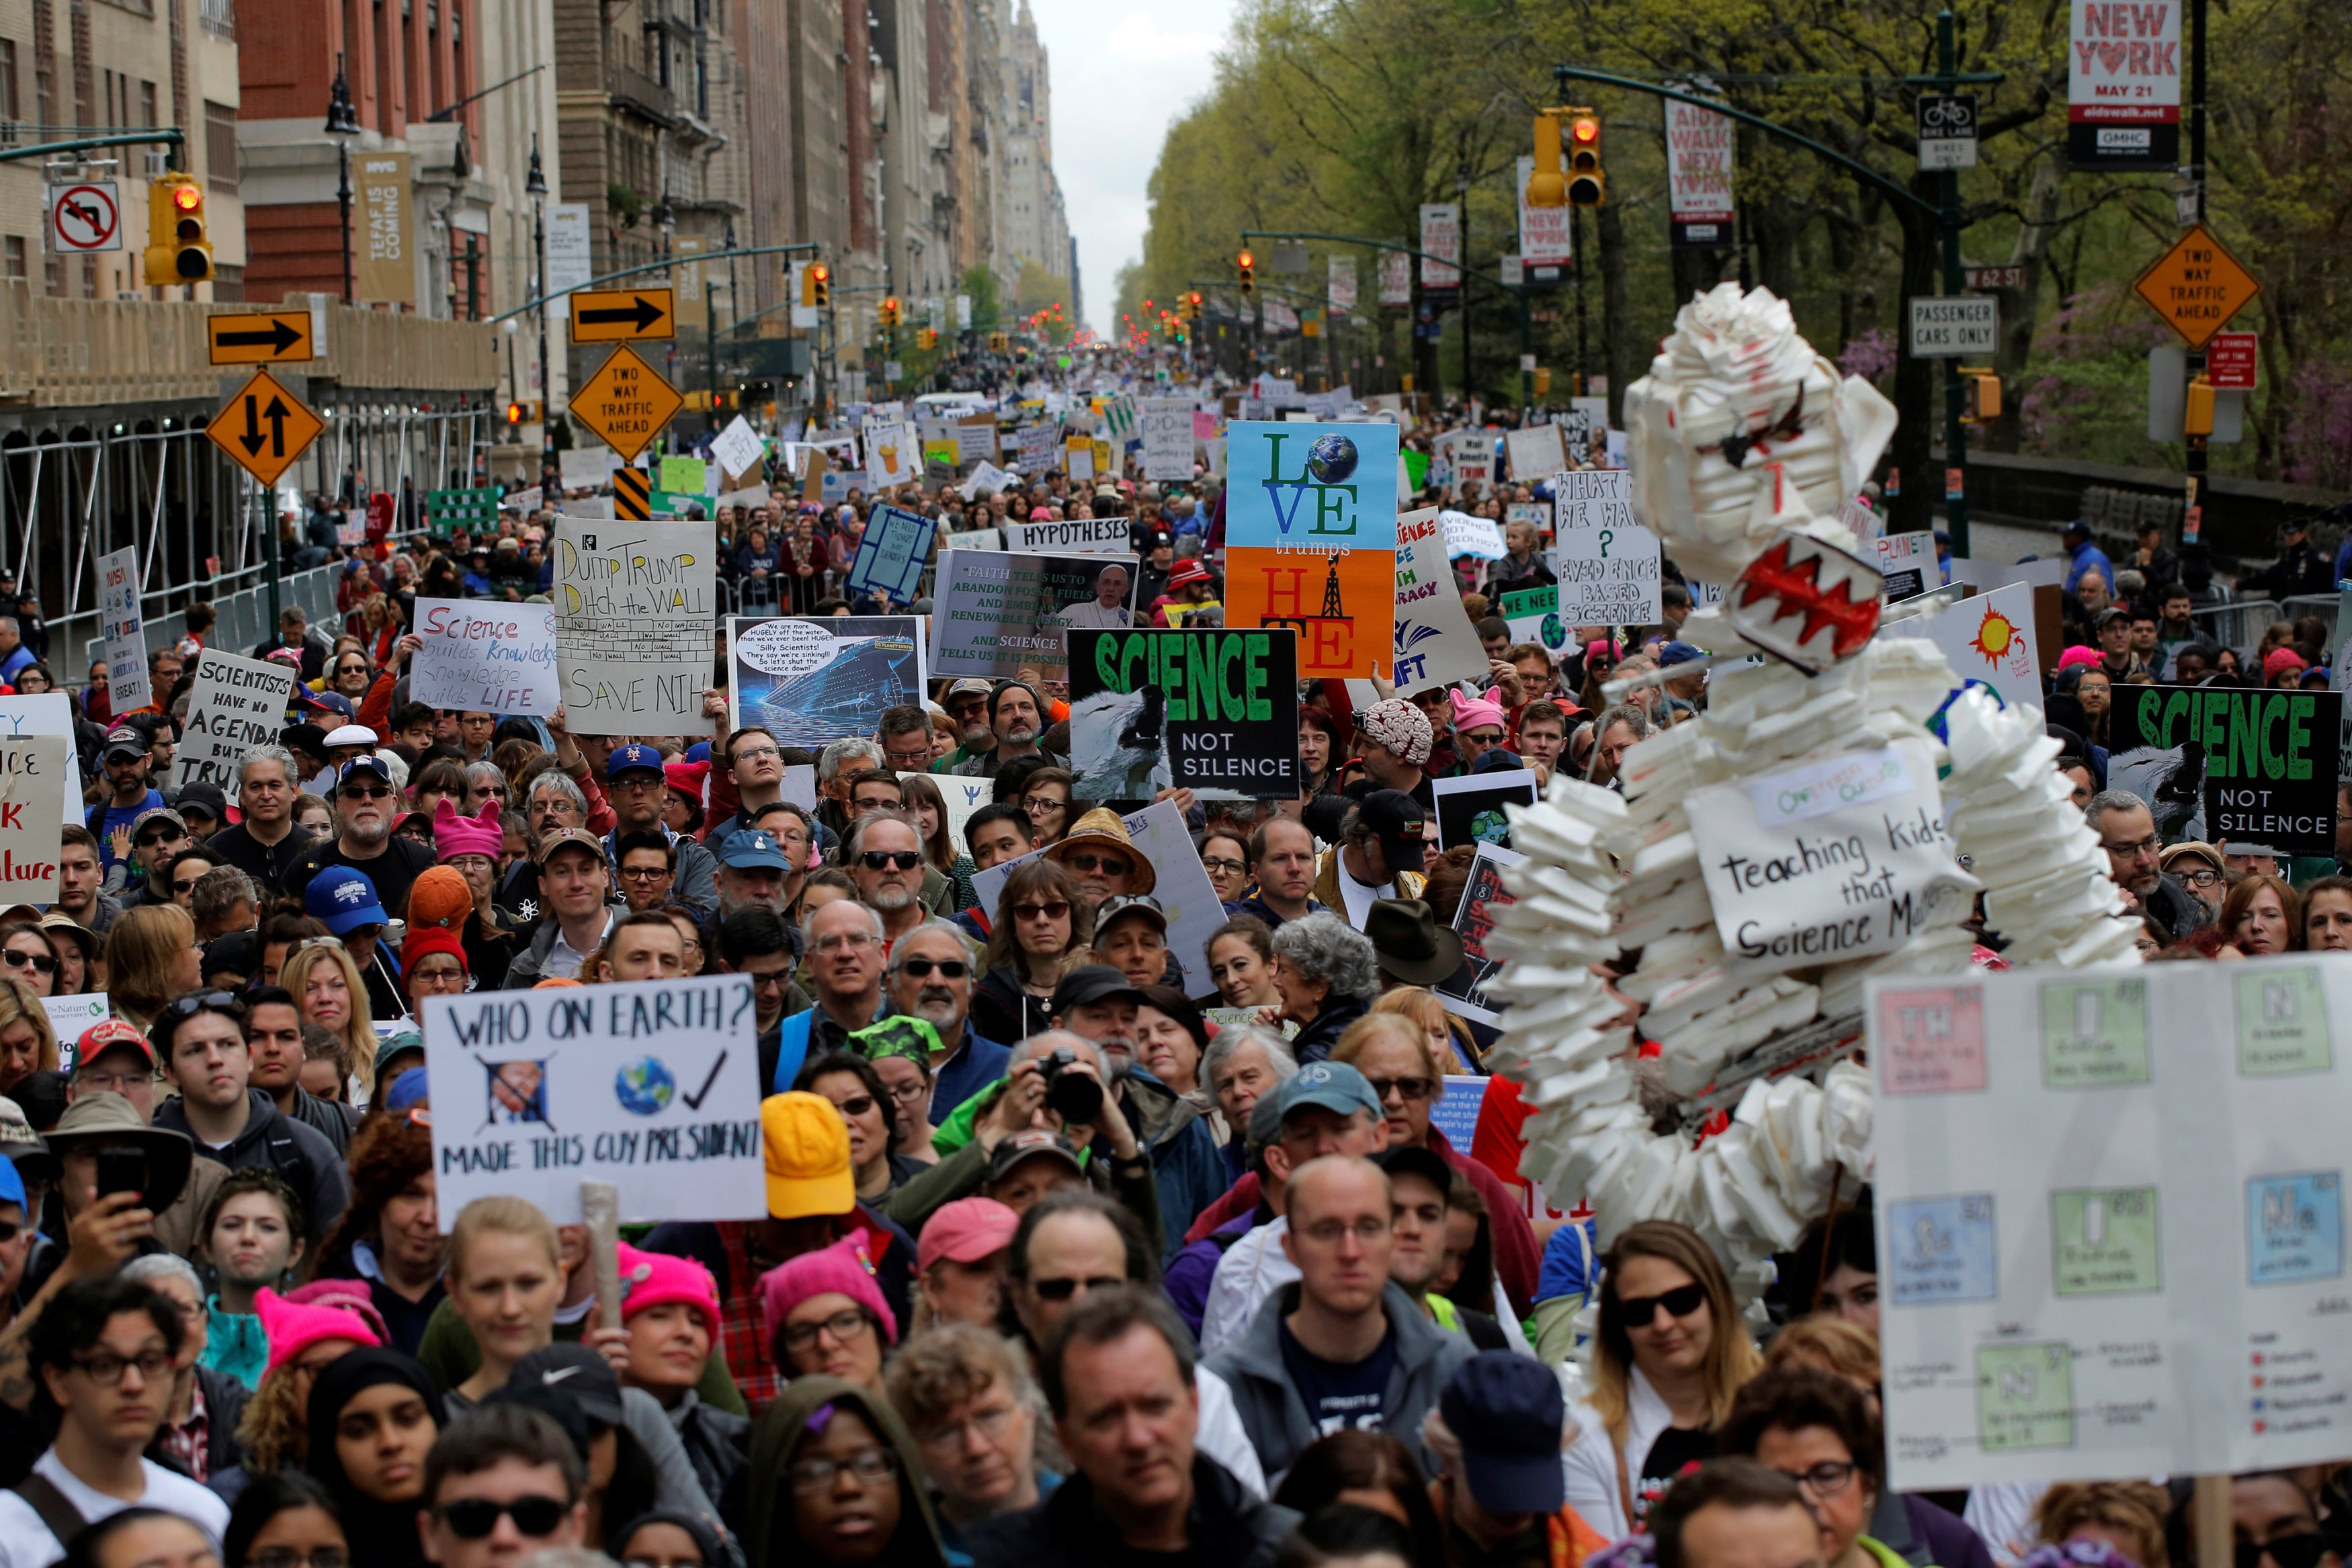 Protesters line Central Park West during the Earth Day 'March For Science NYC' demonstration to coincide with similar marches globally in Manhattan, New York, U.S., April 22, 2017.